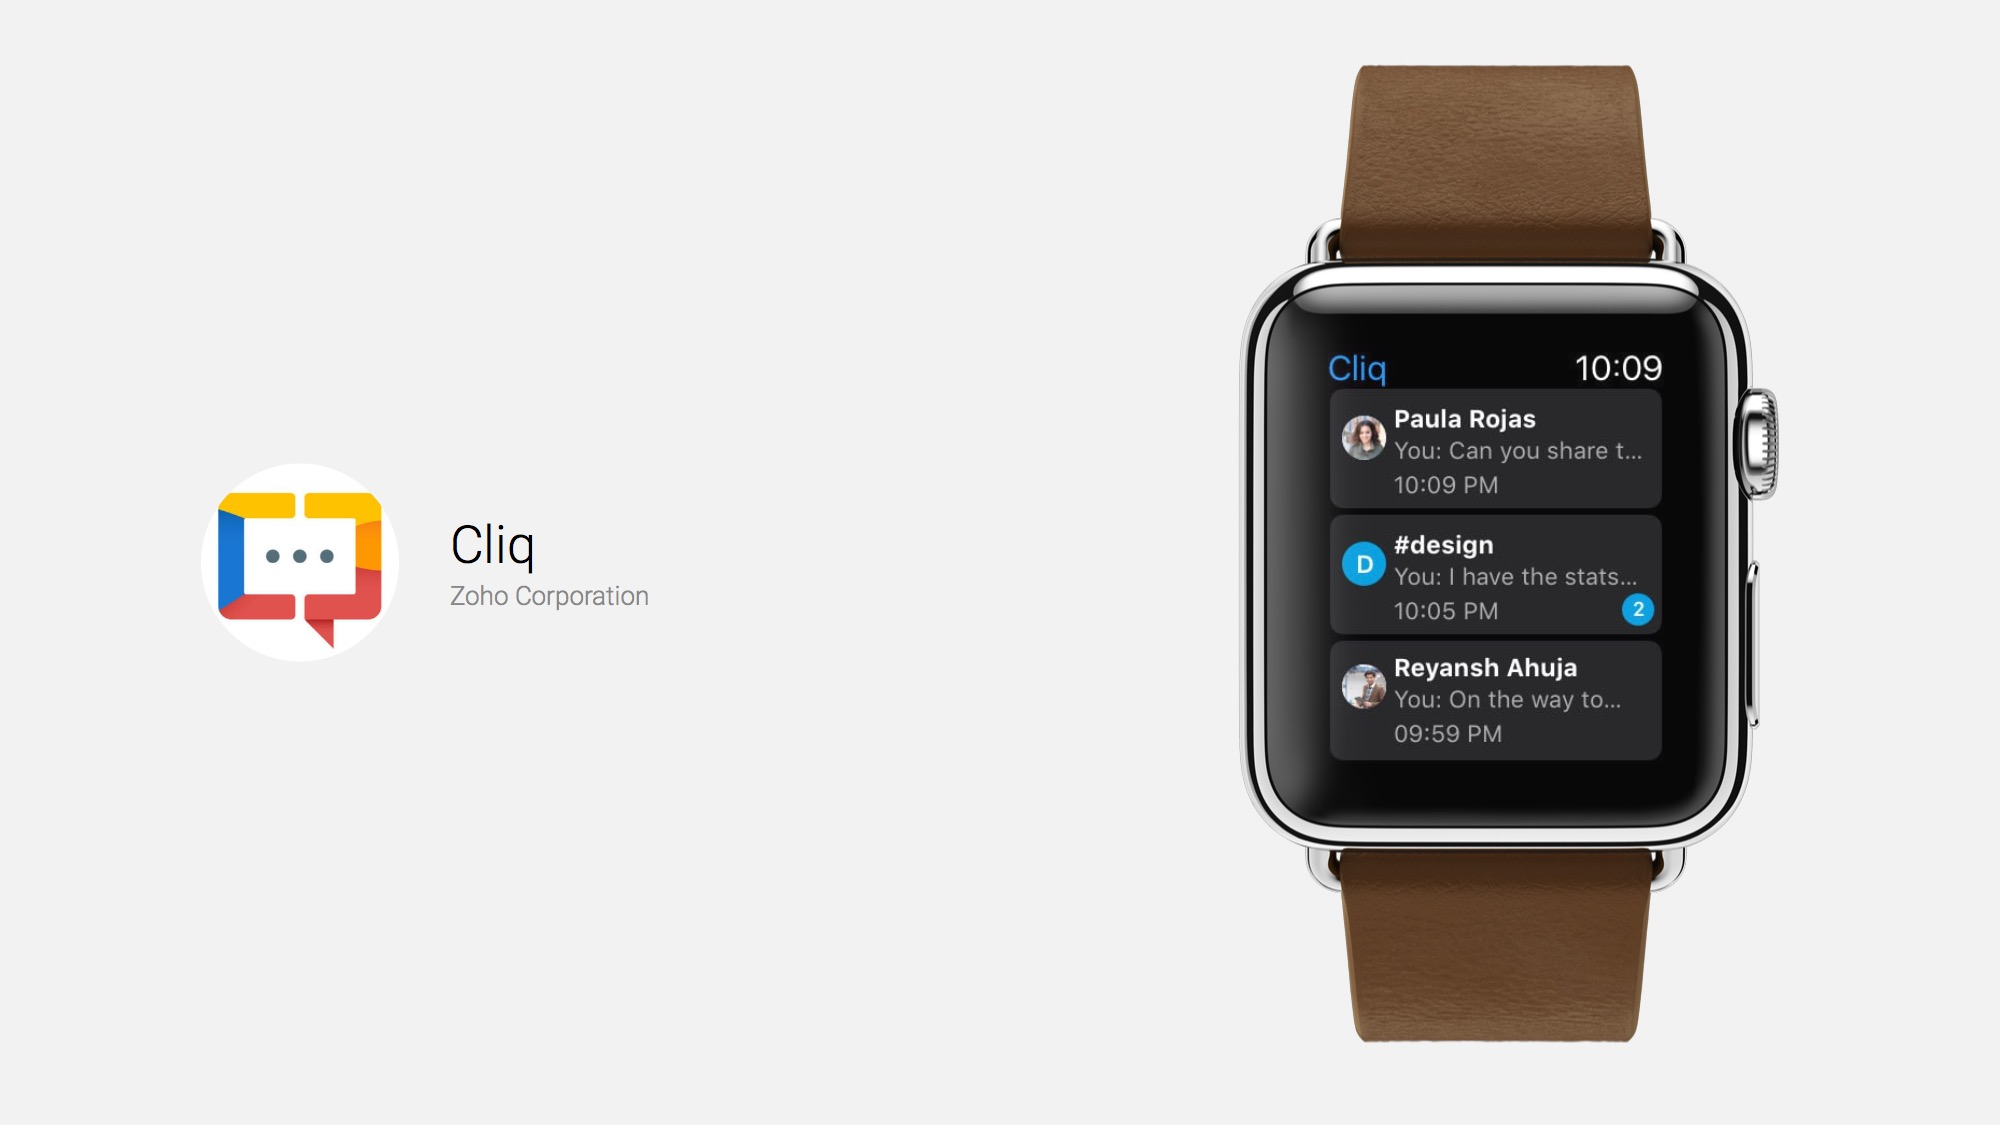 Cliq Apple Watch-Style With Colleagues and Teammates